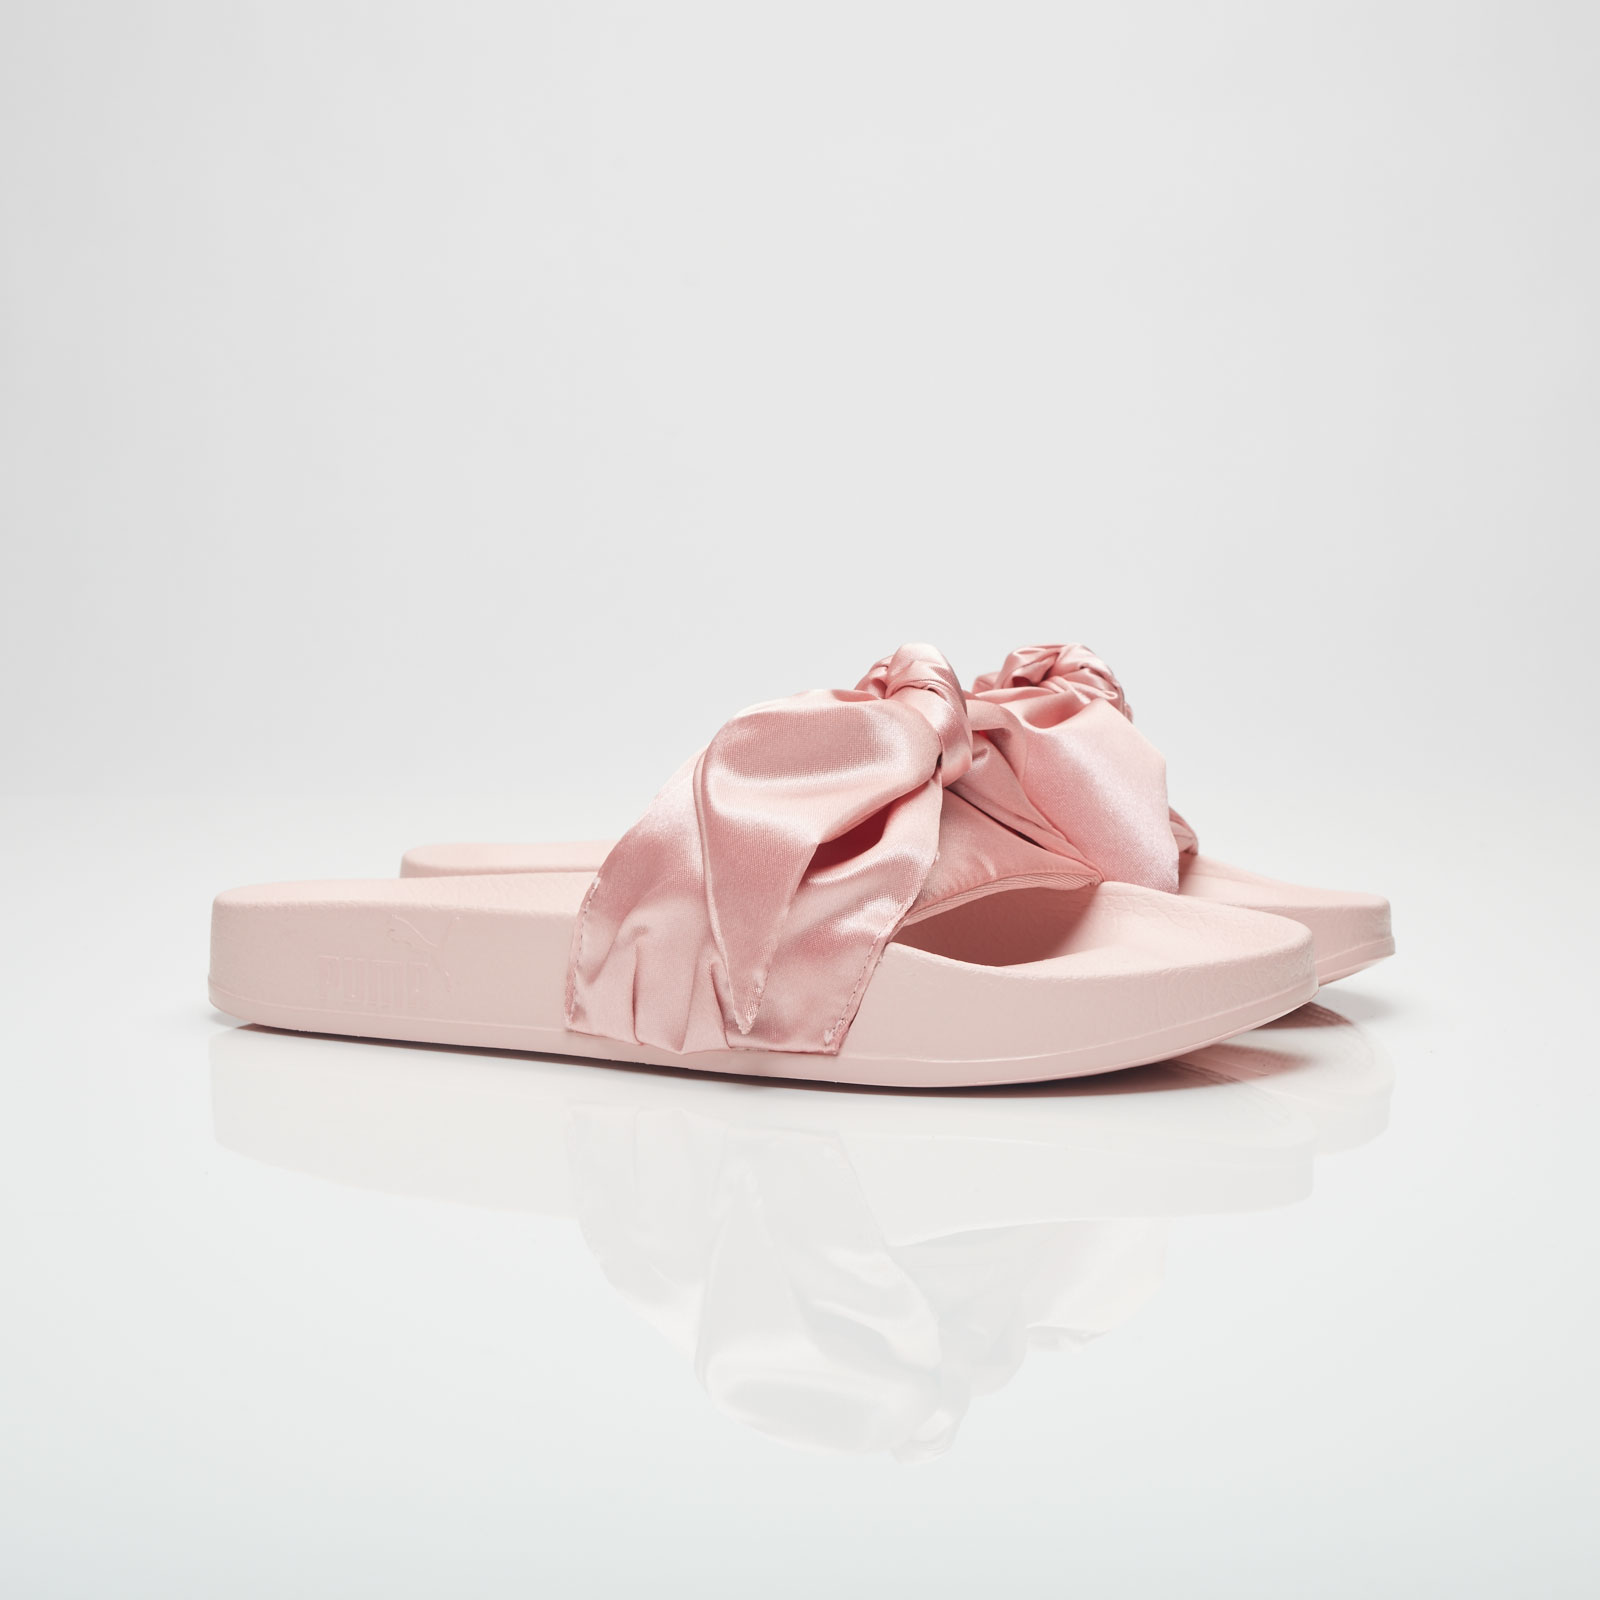 Puma Bow Slide Women - 365774-03 - Sneakersnstuff  5ca31ec003